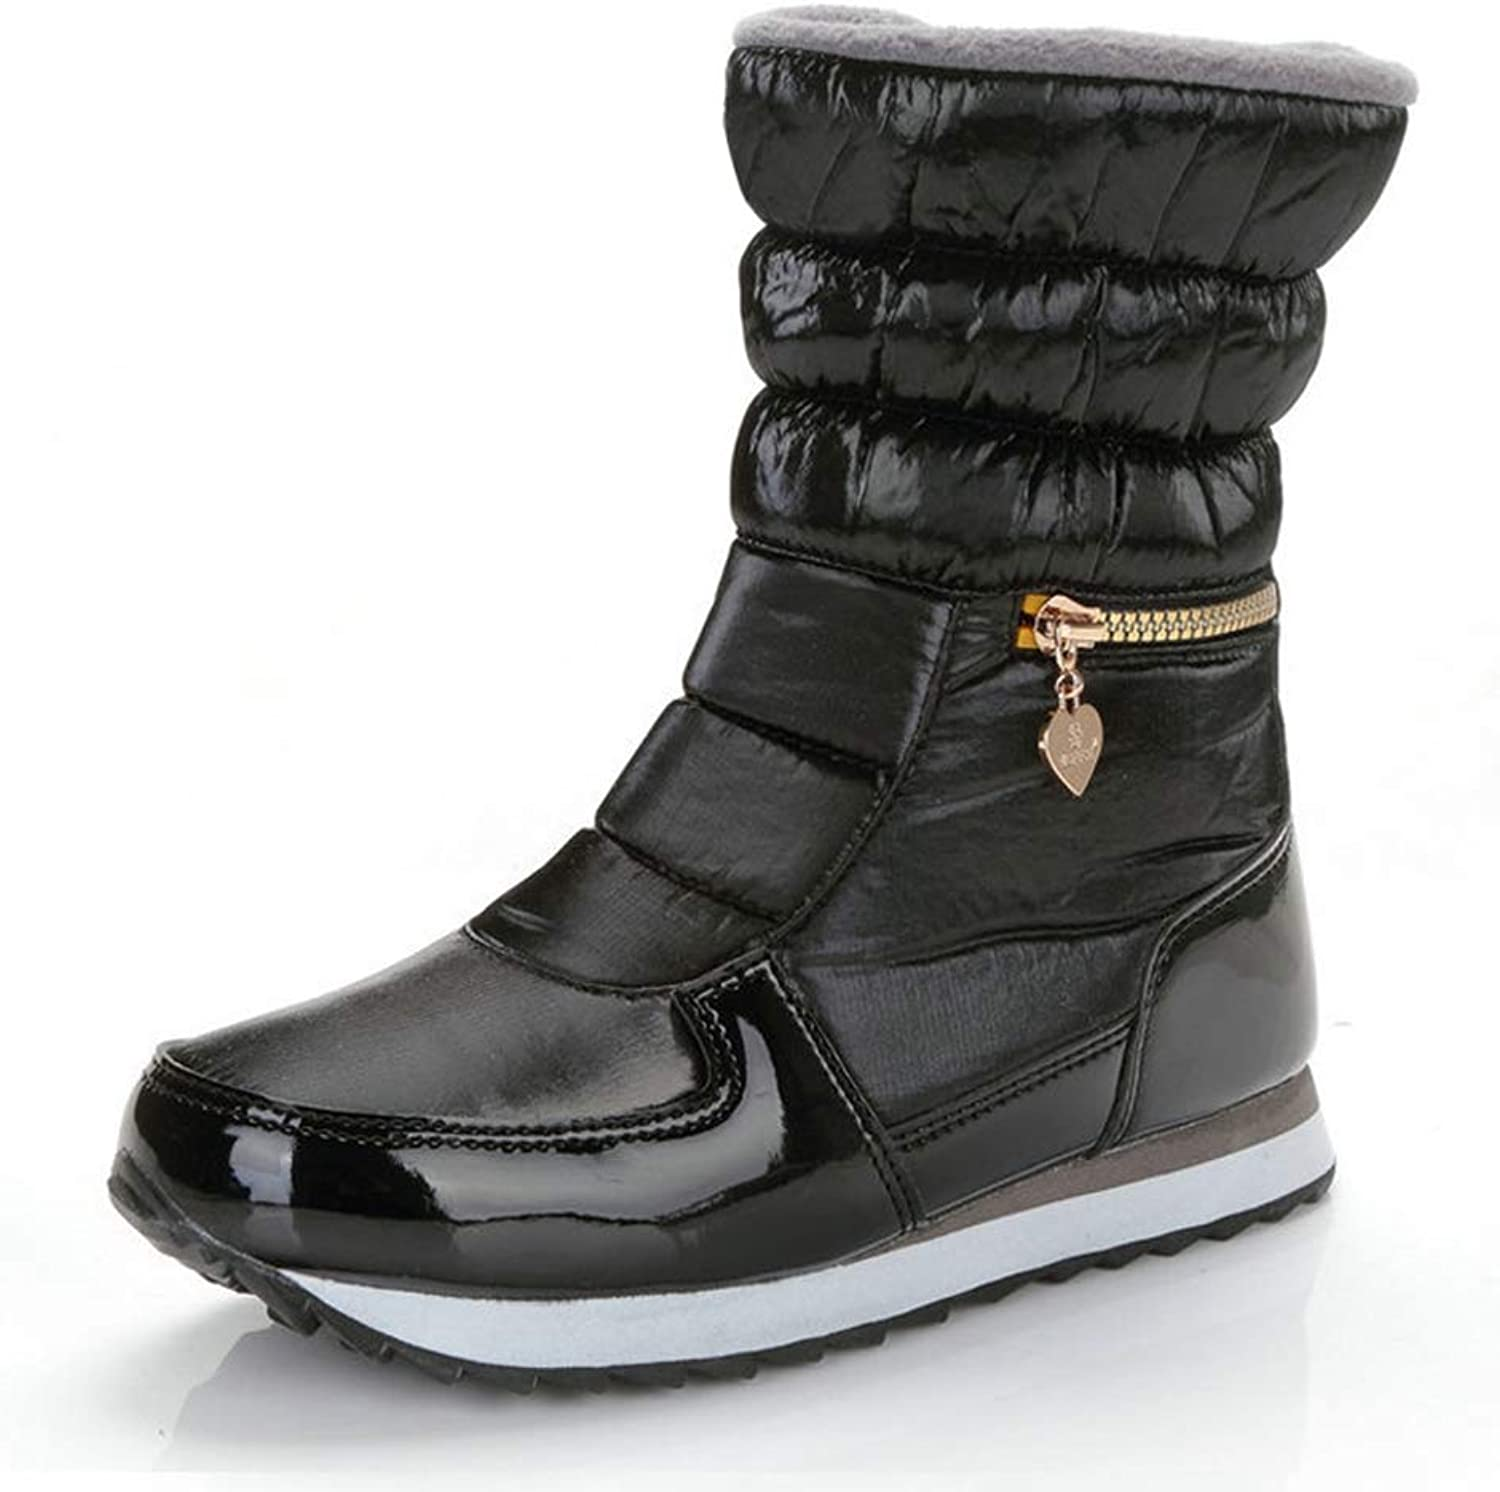 T-JULY Women's Winter Warm Ankle Snow Short Boots with Fur Waterproof Flat Quilted Ladies Casual shoes